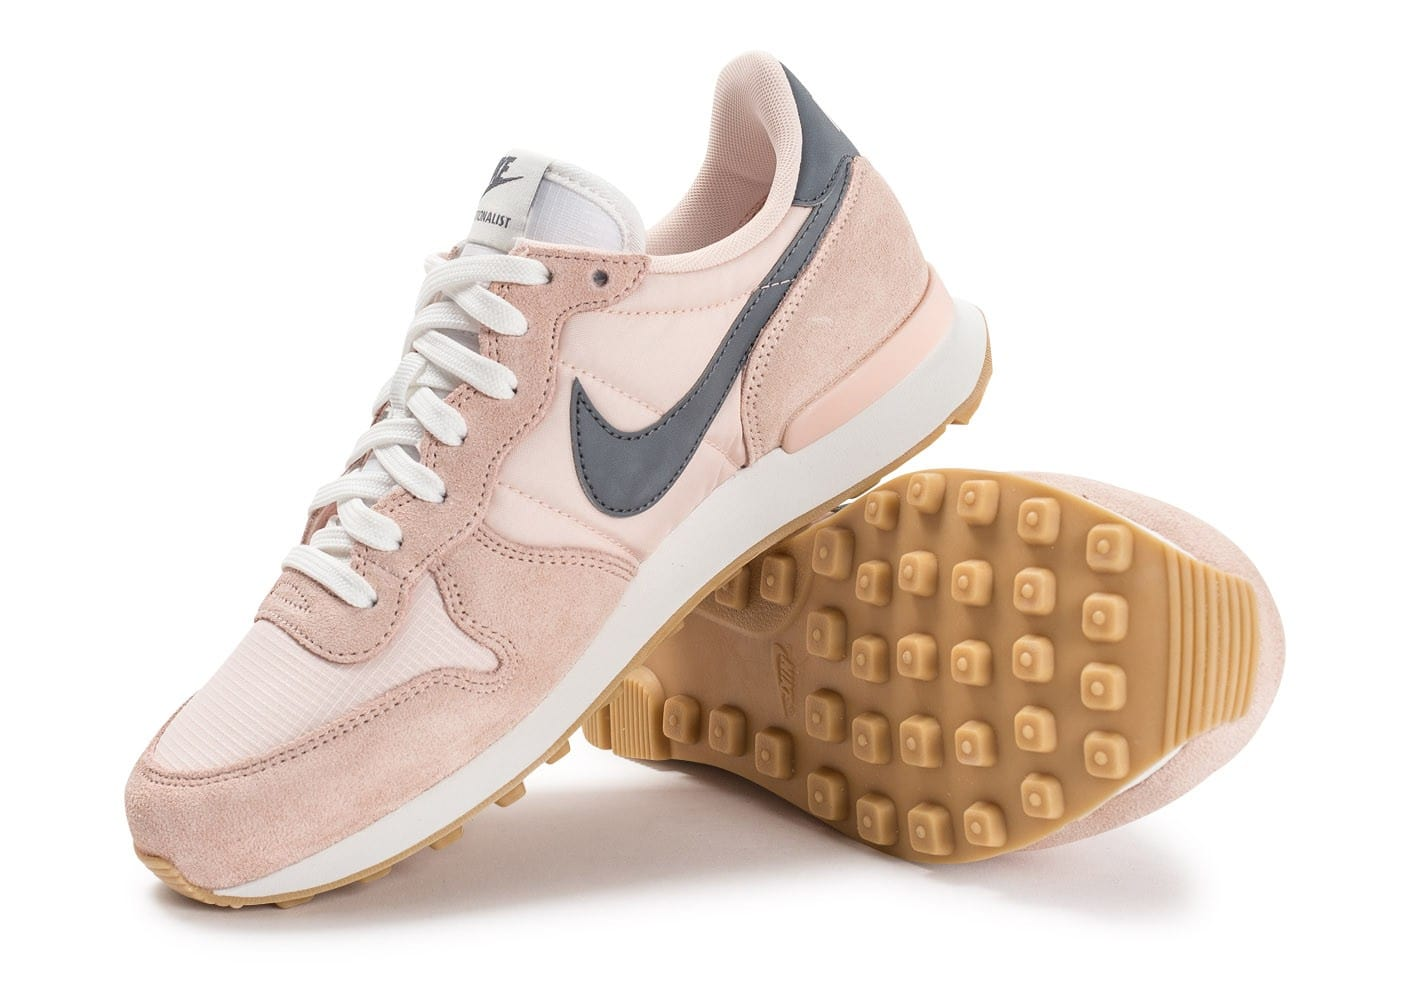 wholesale dealer 22618 baeff ... Chaussures Nike Internationalist W rose pâle vue avant ...